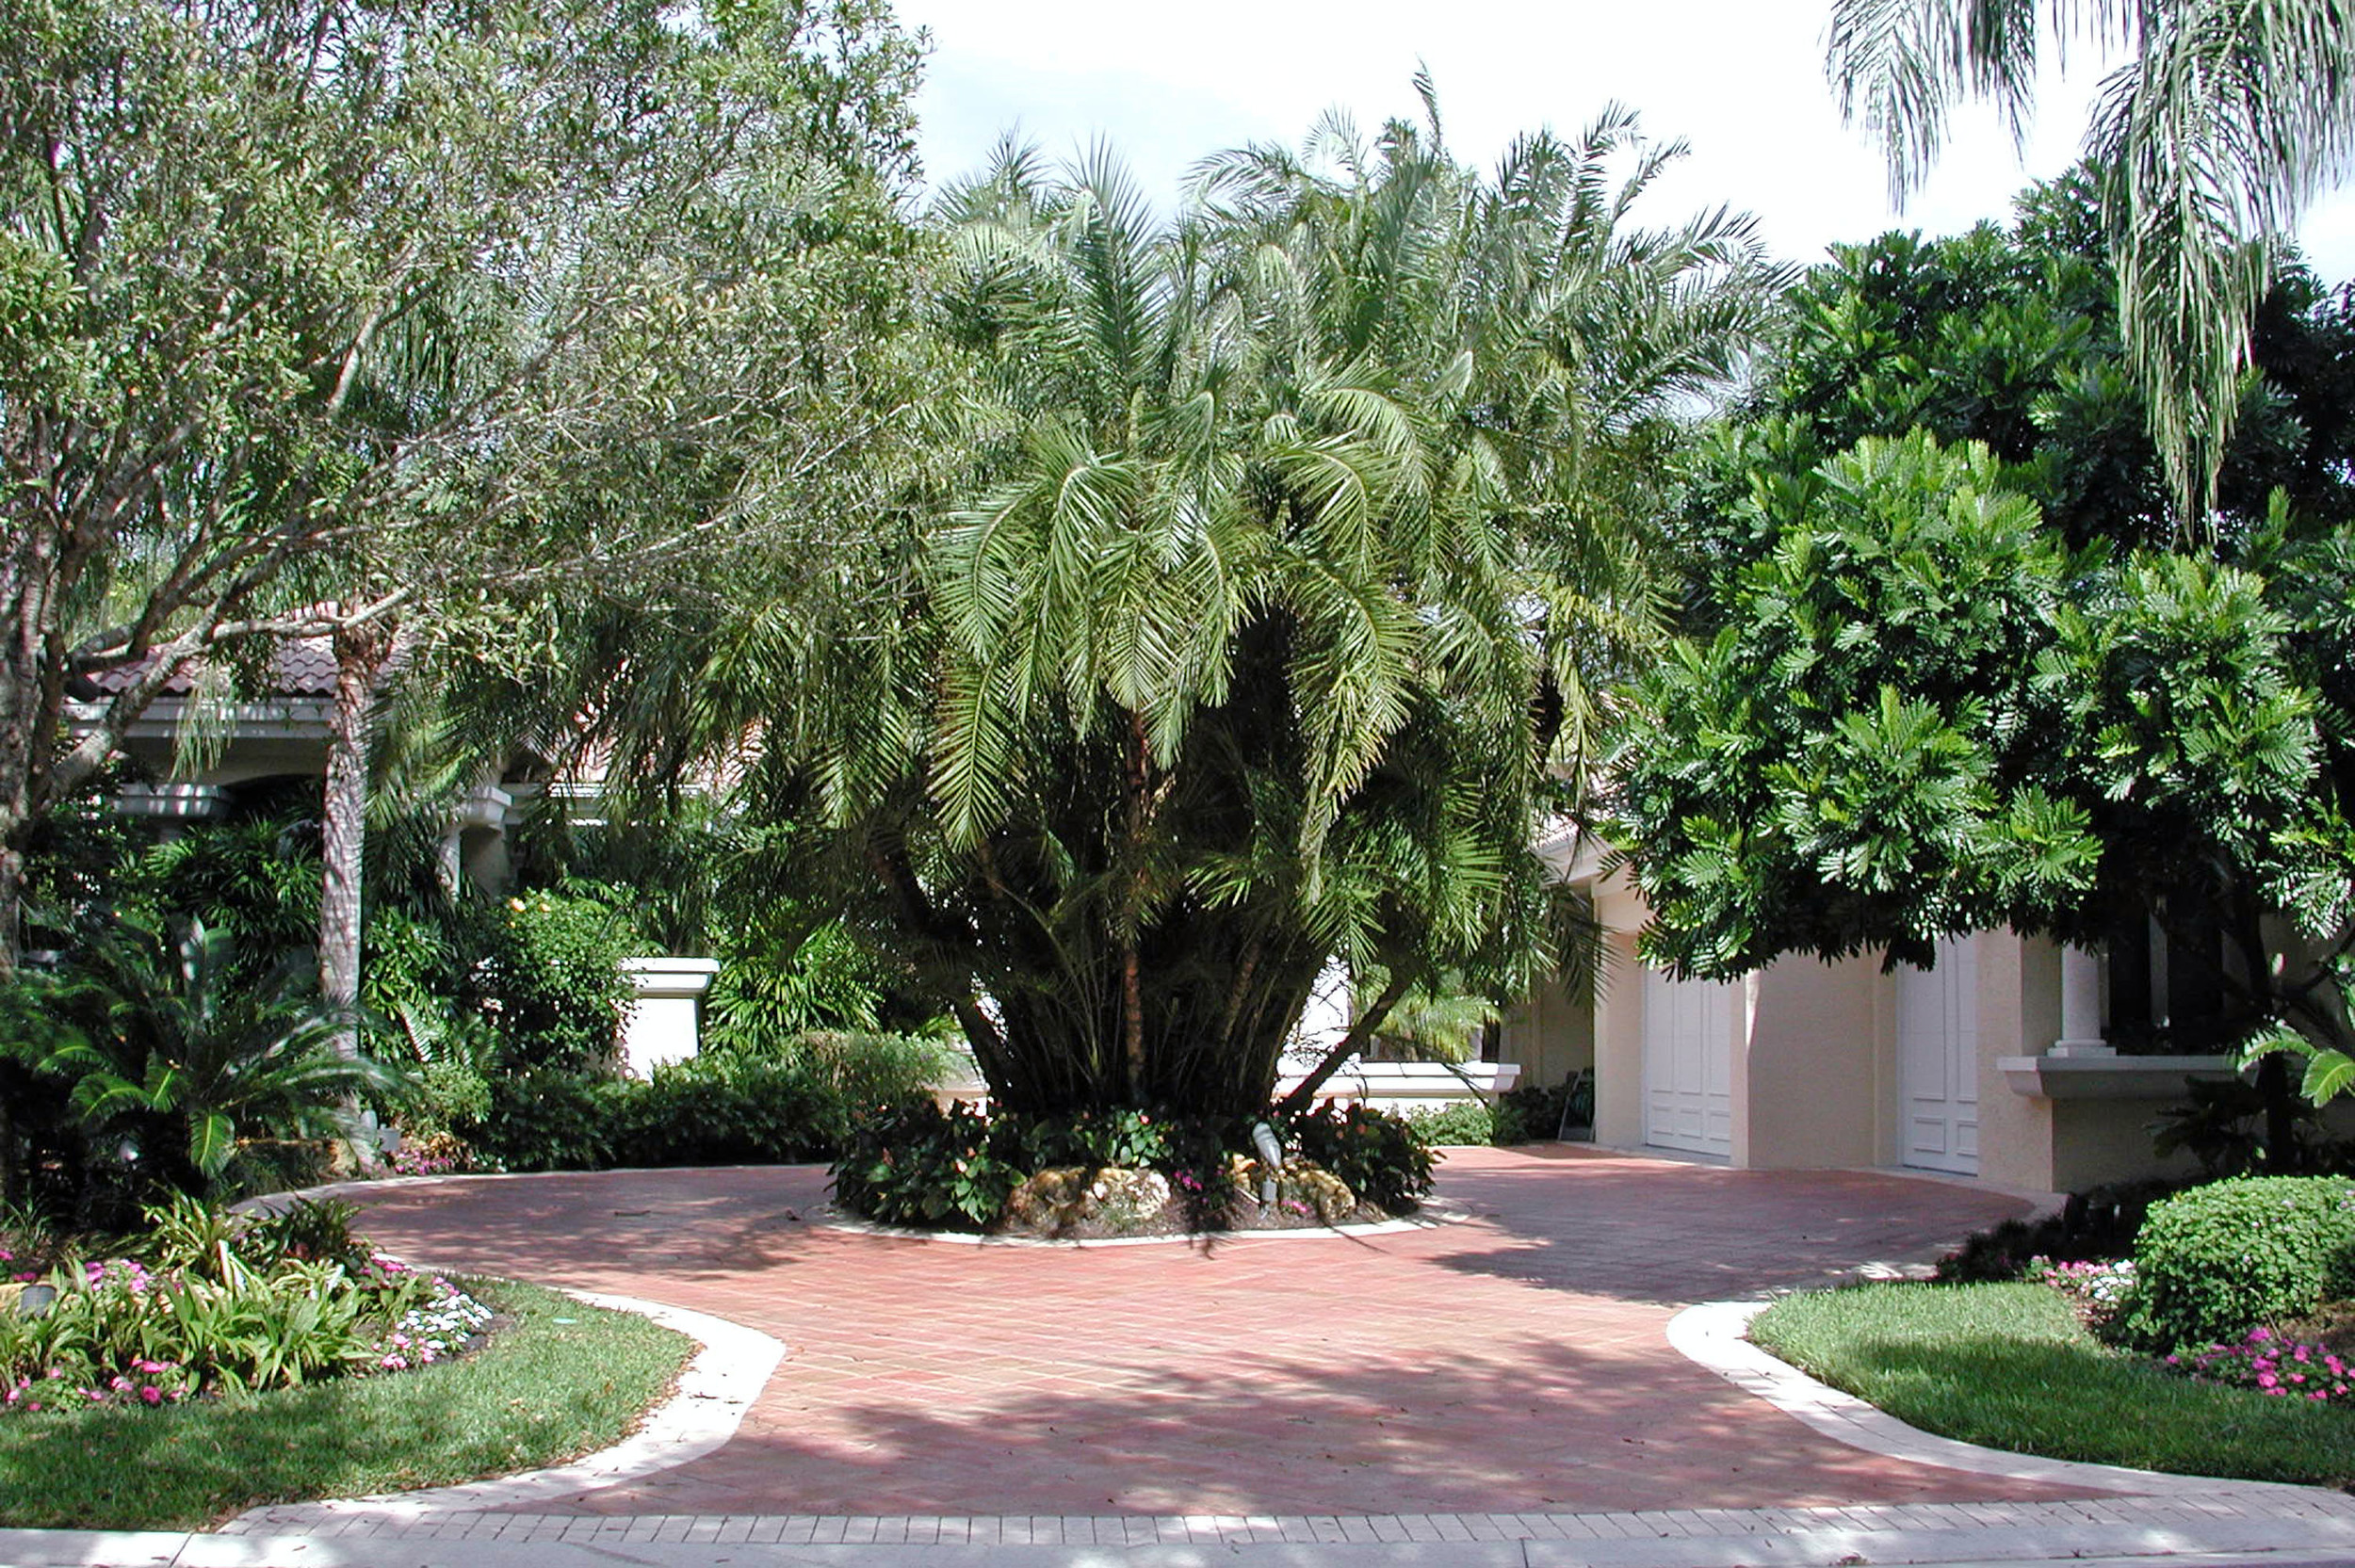 Admirals Cove Residence Paver Entry Reclinata Palm.jpg